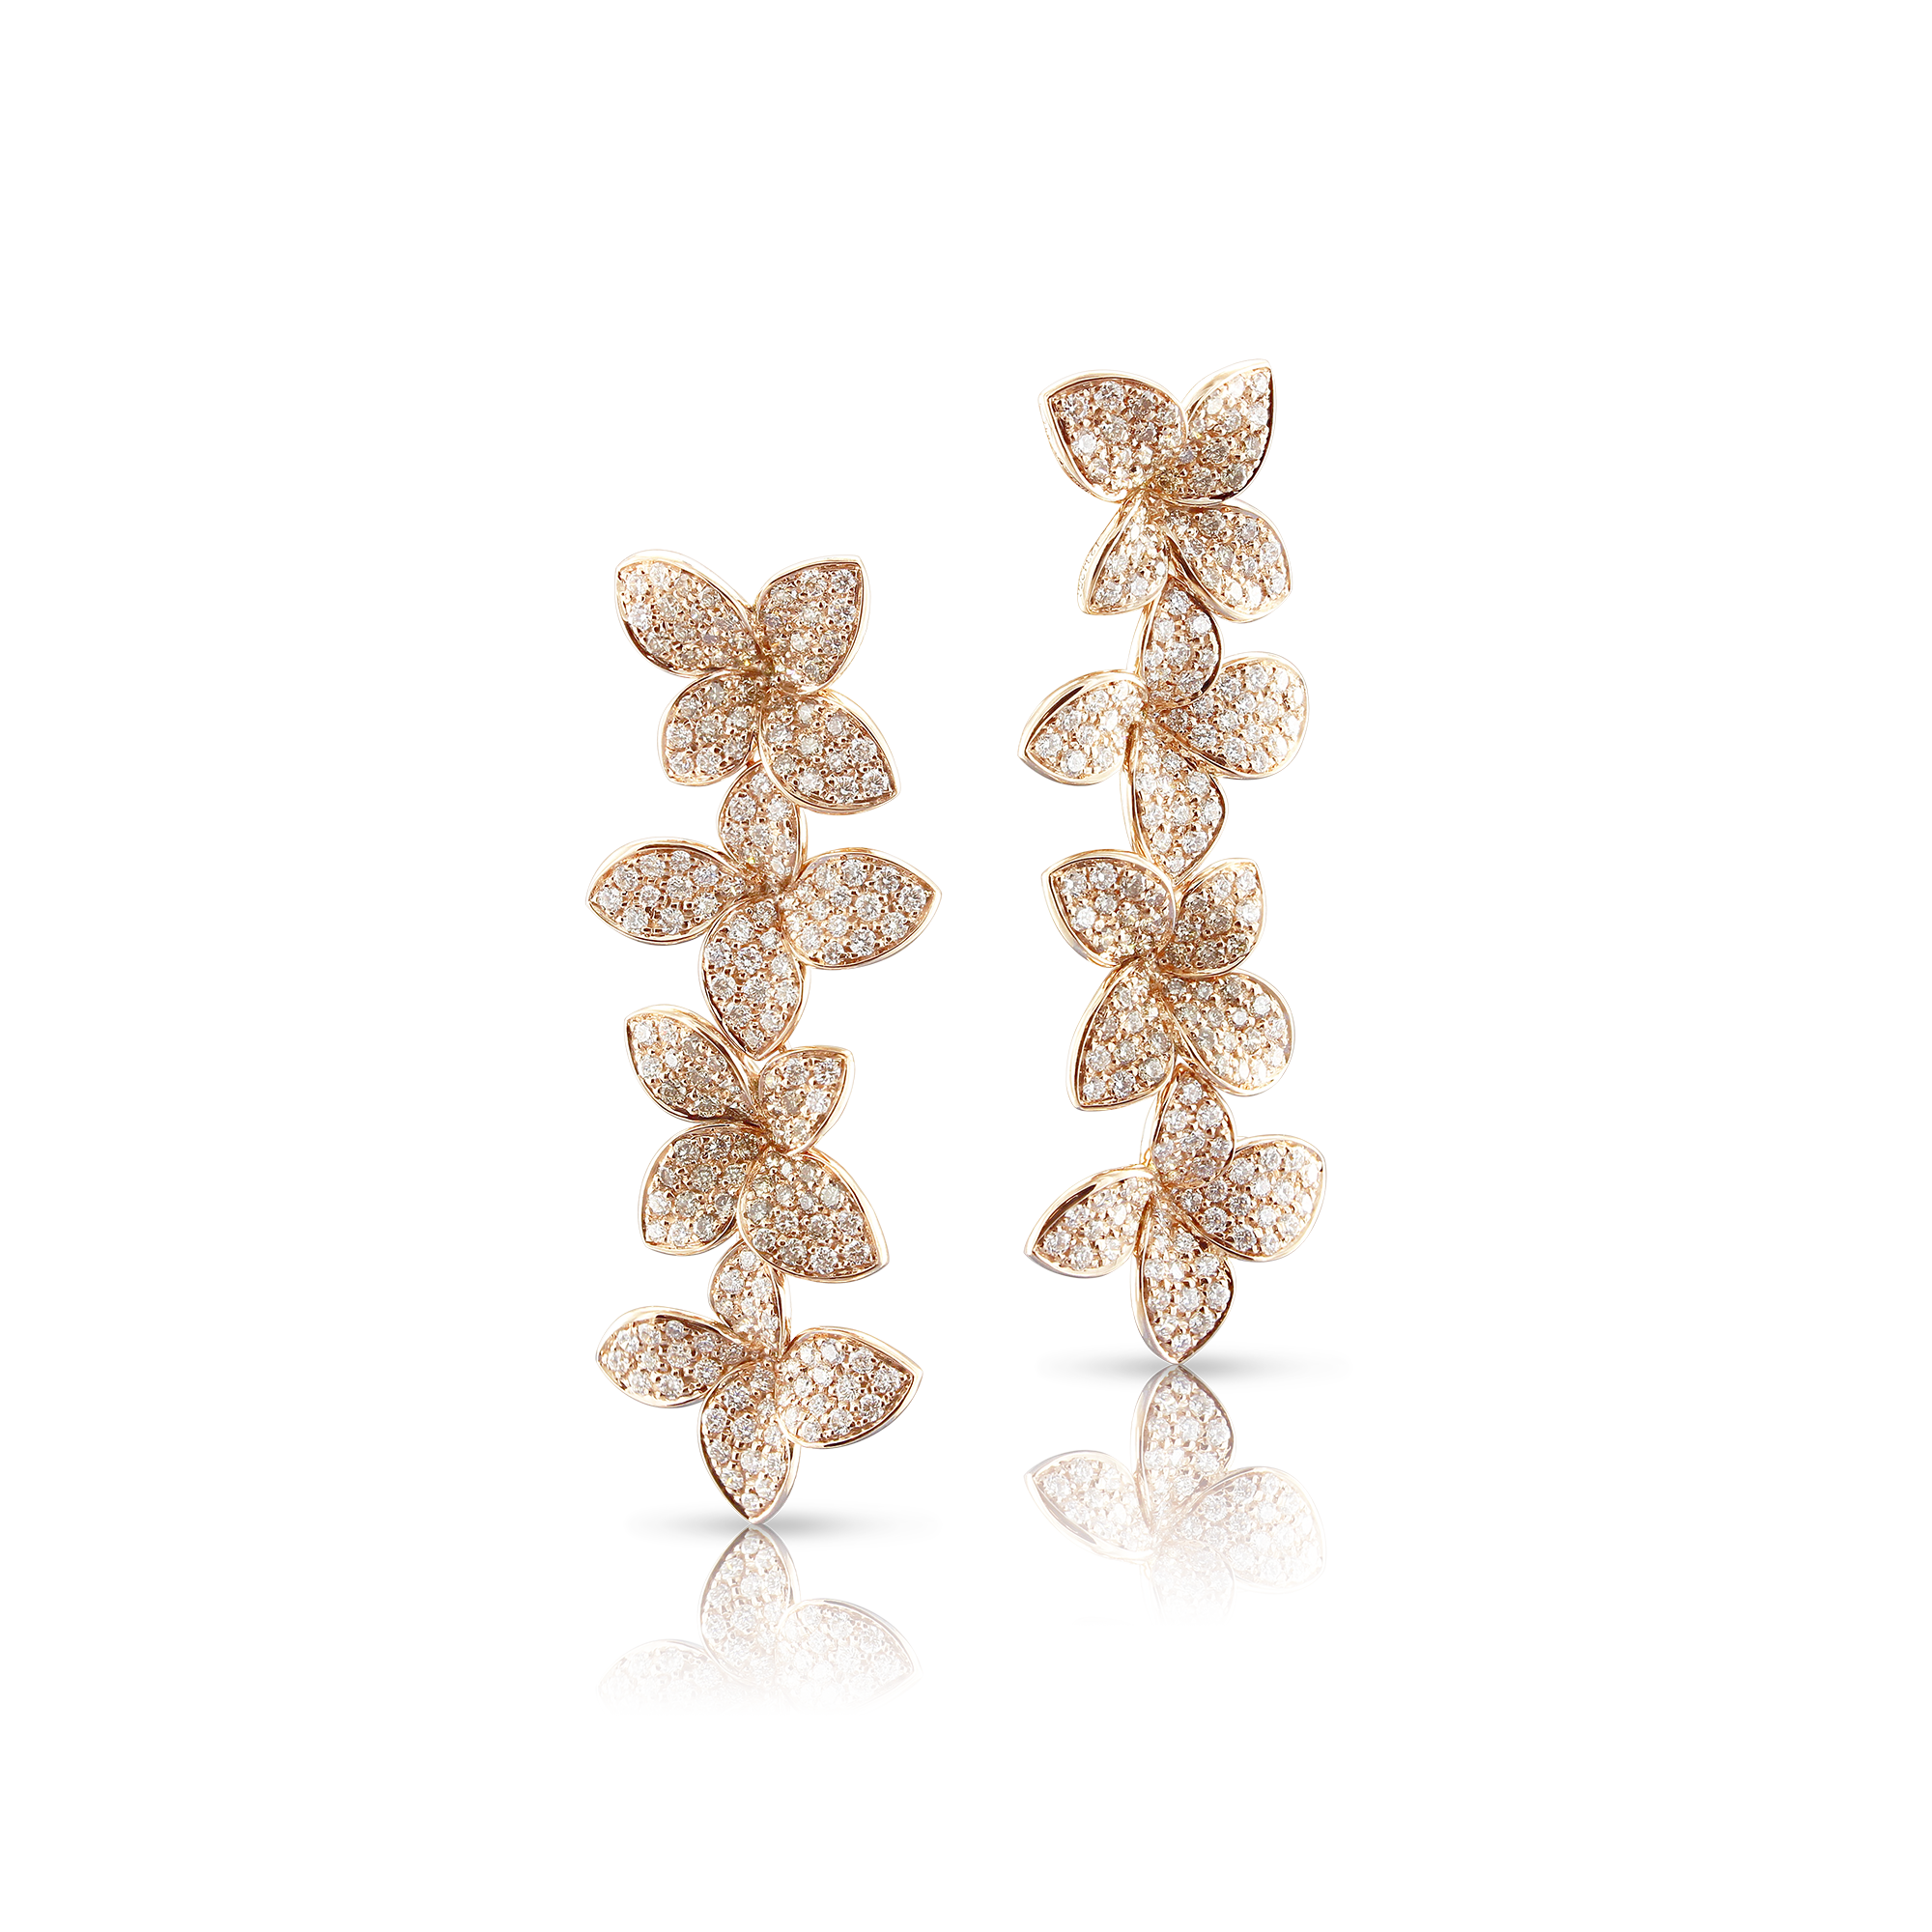 NEW 18k Rose Gold Goddess Garden Earrings with White and Champagne Diamonds